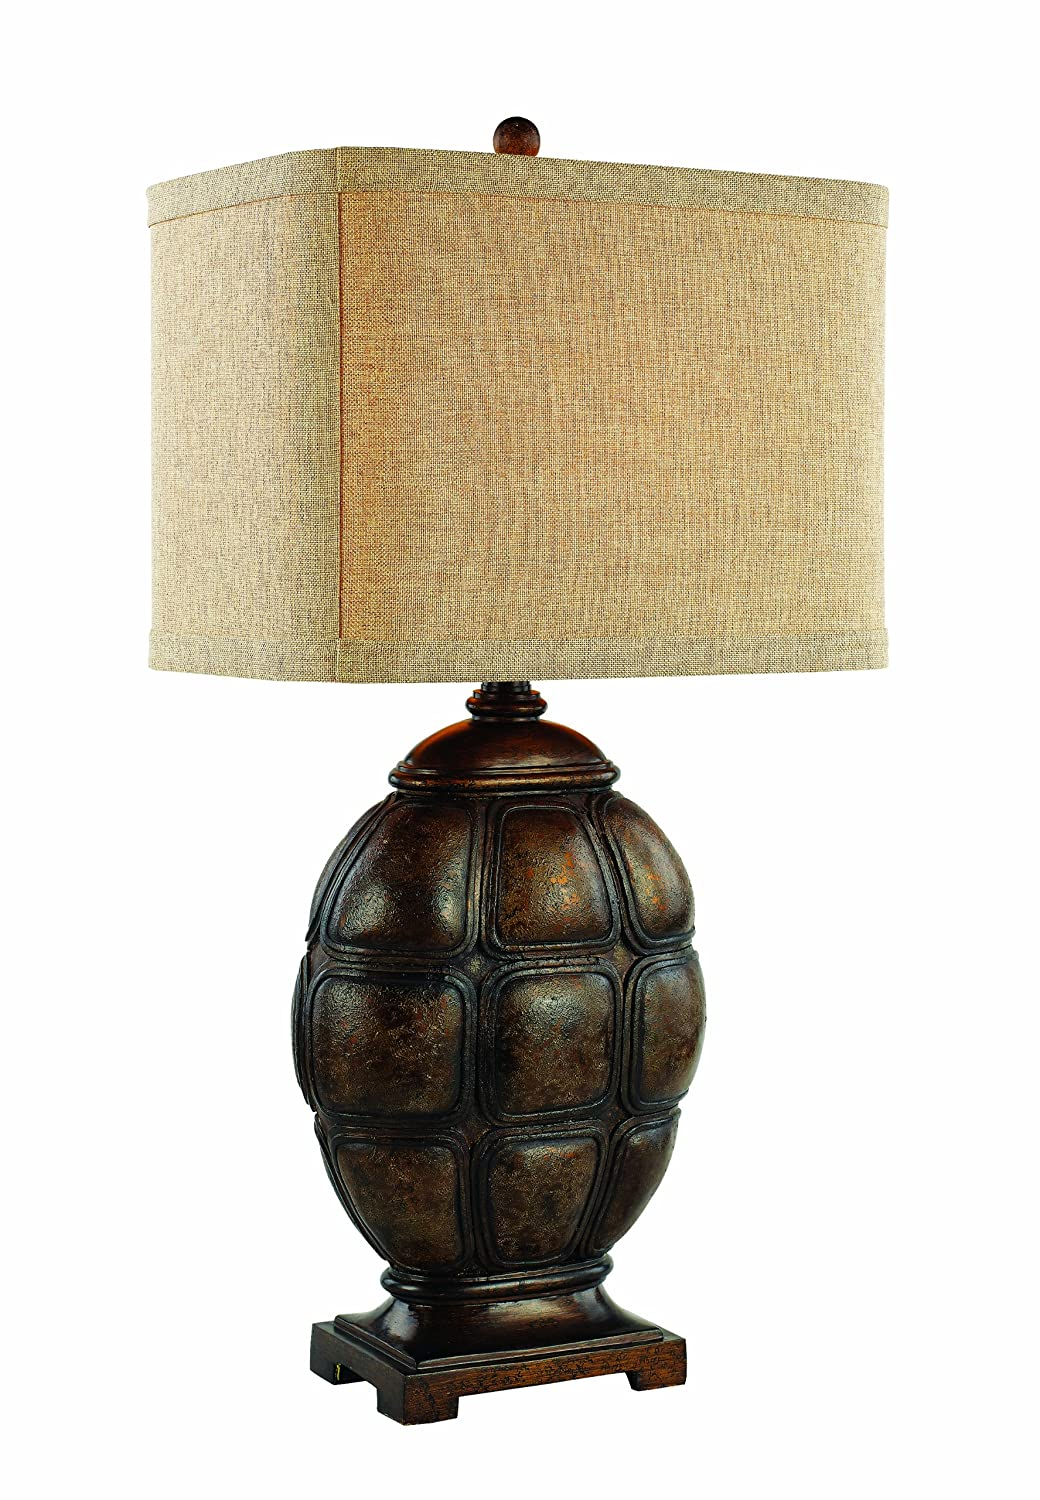 tortoise lighting. Amazon.com: Trans Globe Lighting Ancient Tortoise Table Lamp: Home \u0026 Kitchen A